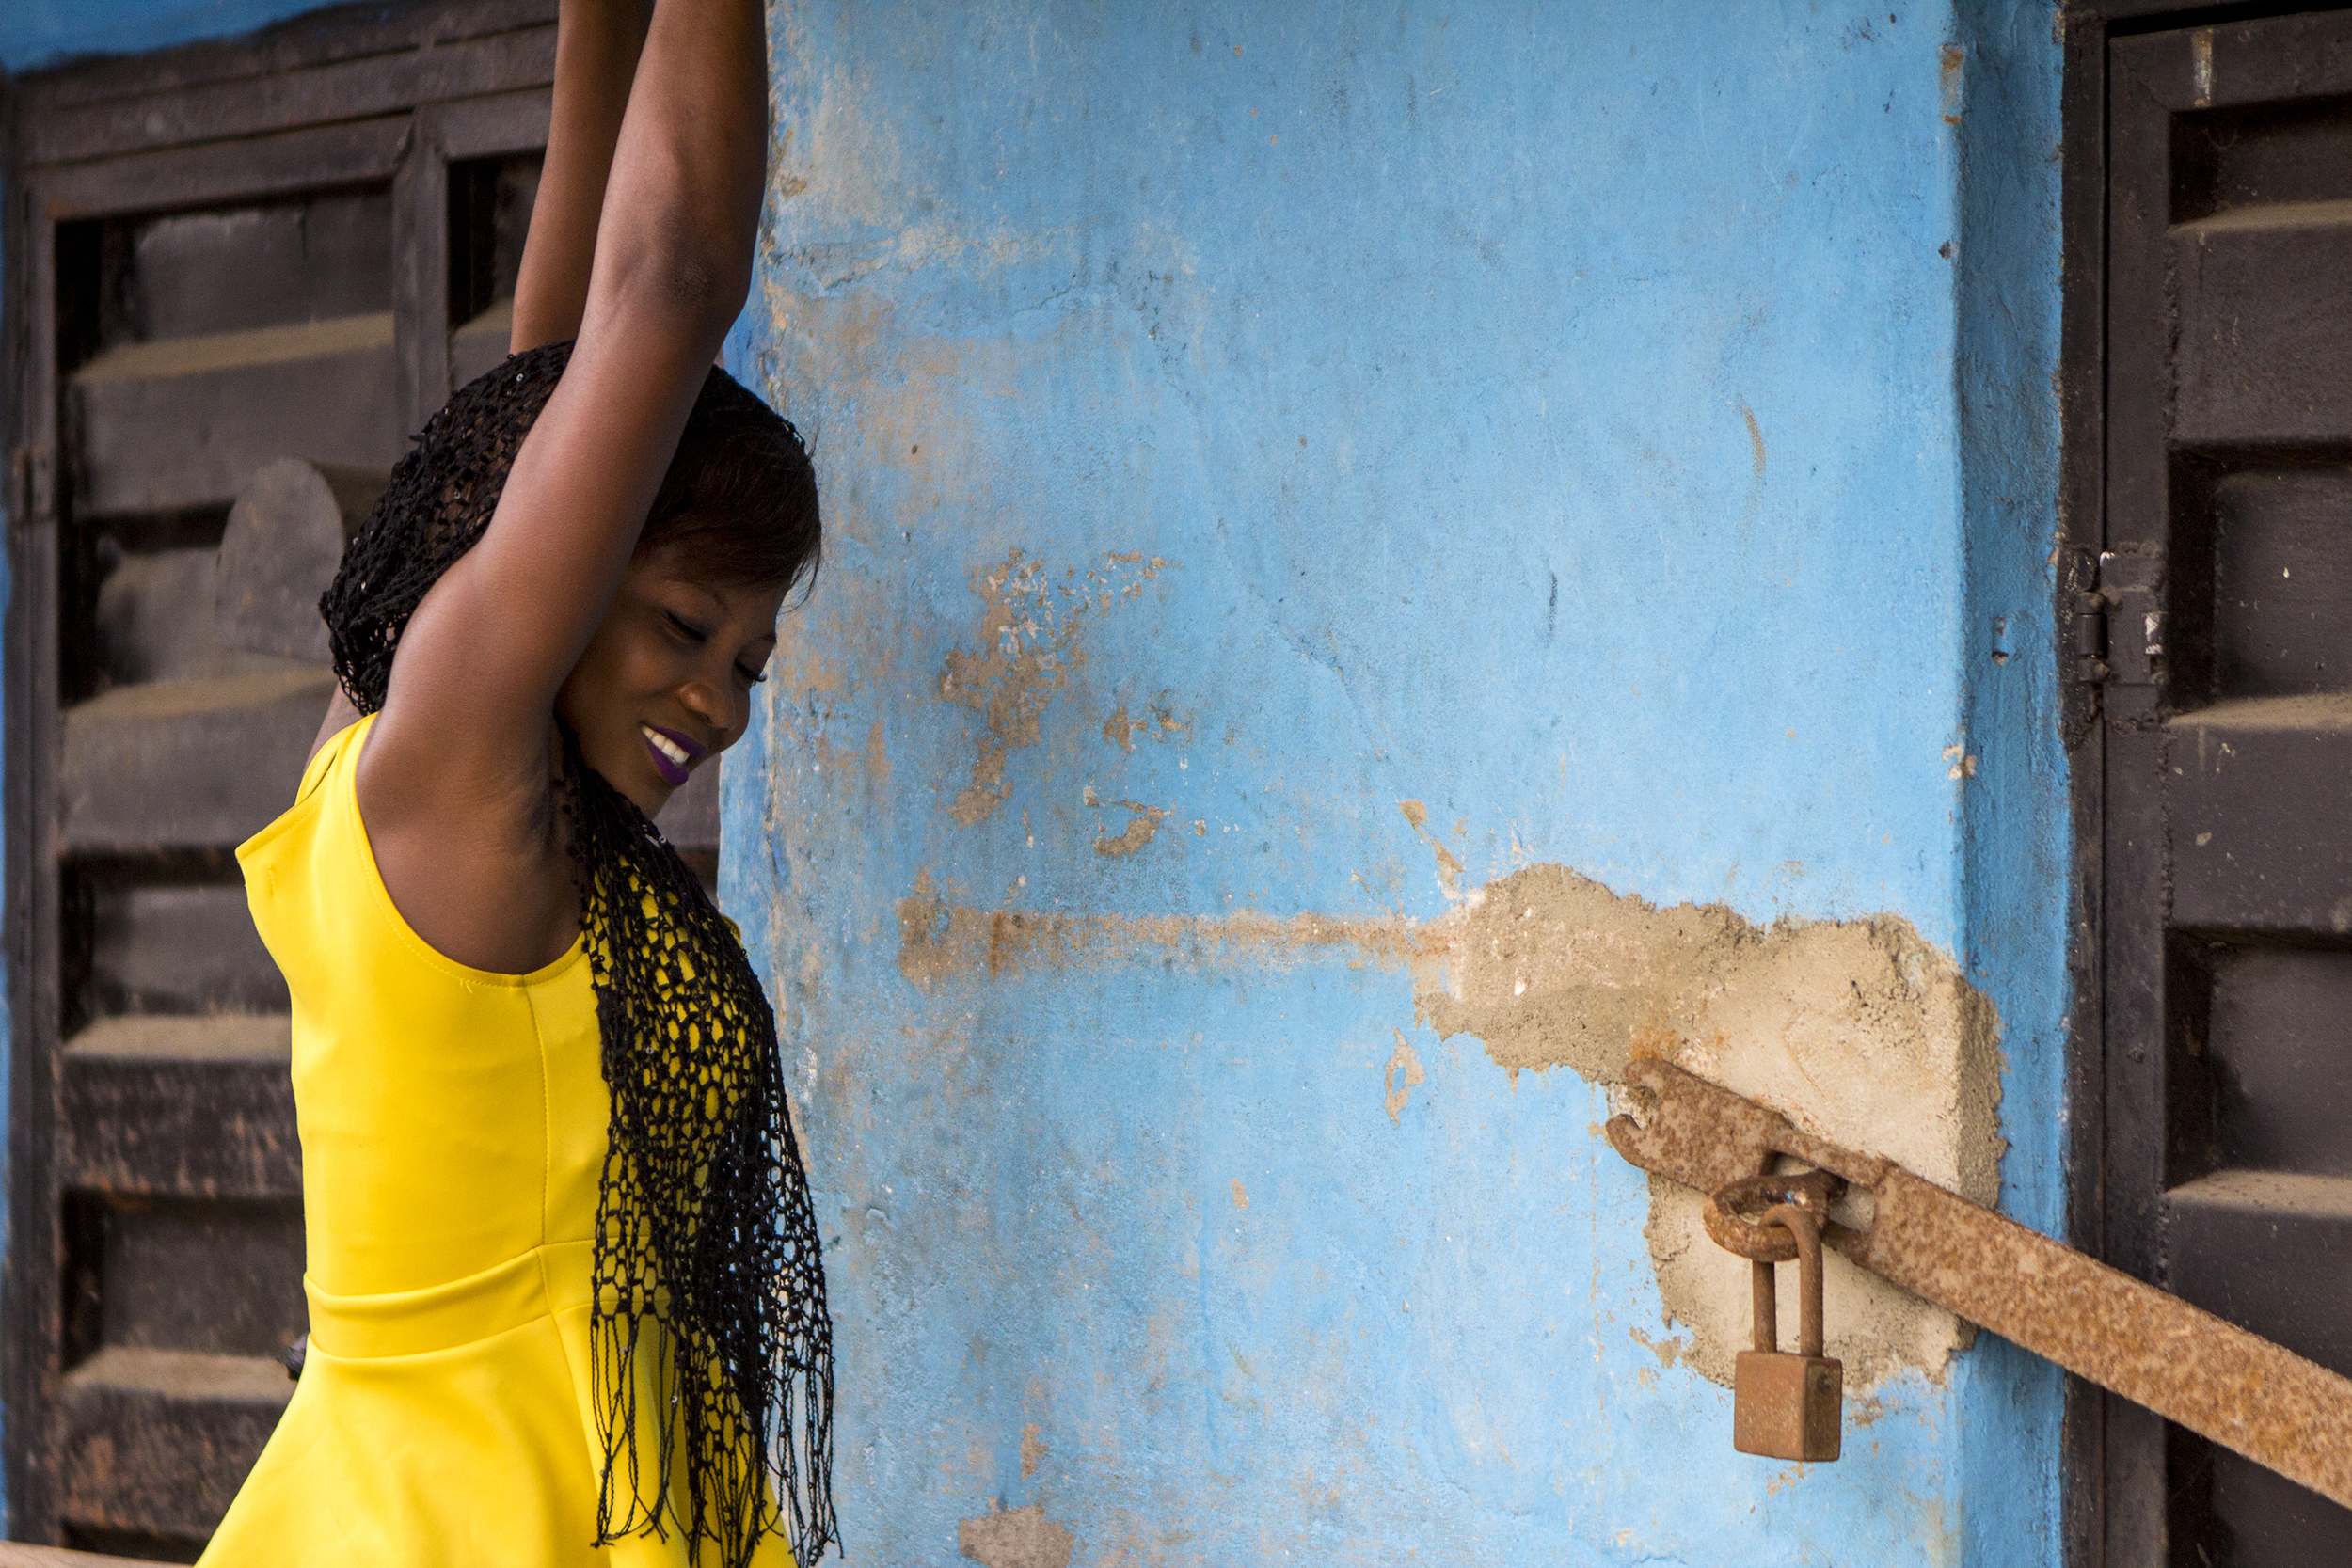 A business owner in Lagos, Nigeria opens her shop for business on Feb. 25, 2015.